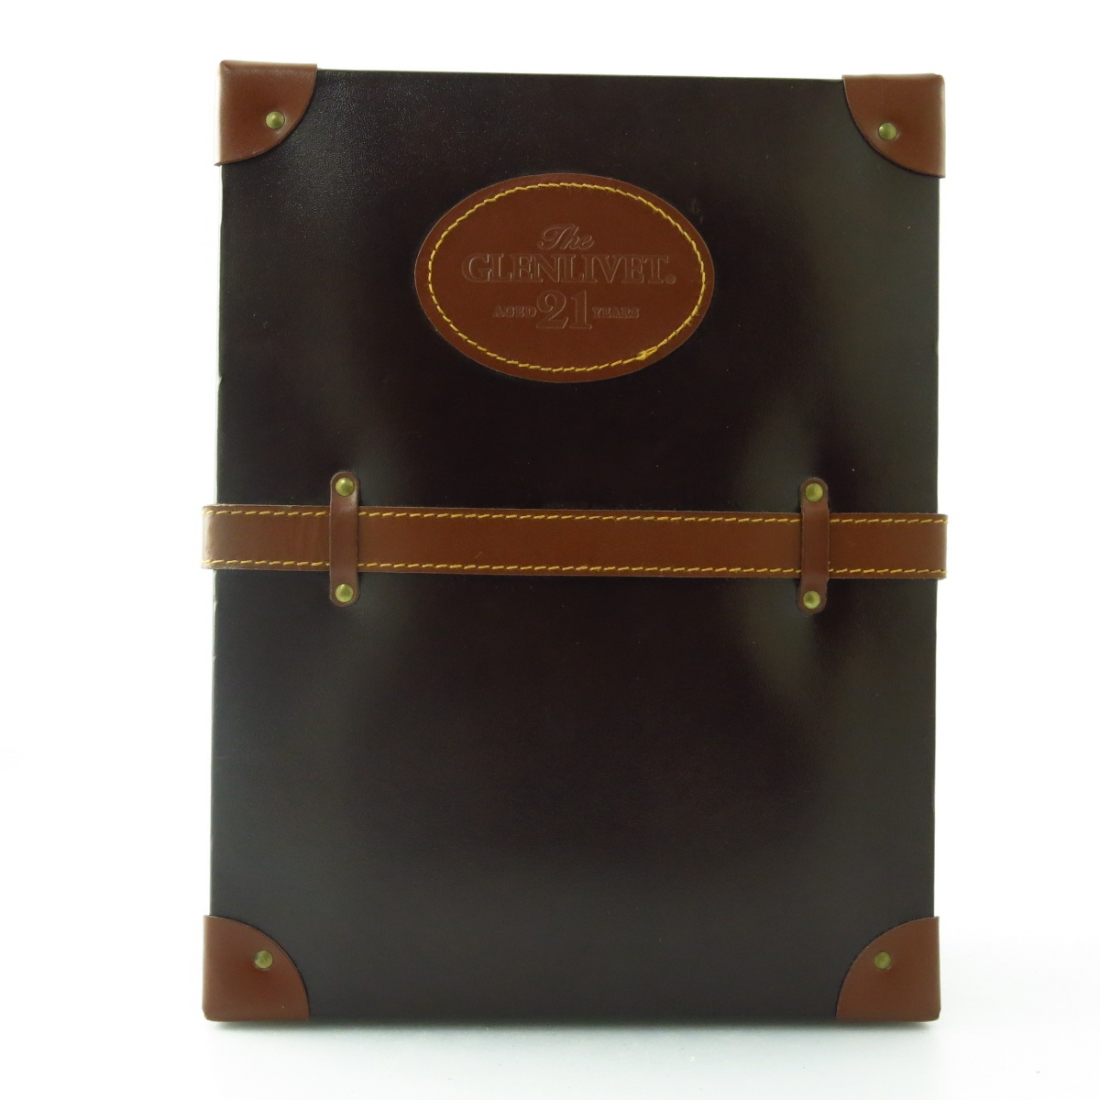 Glenlivet 21 Year Old Limited Edition / Box Only